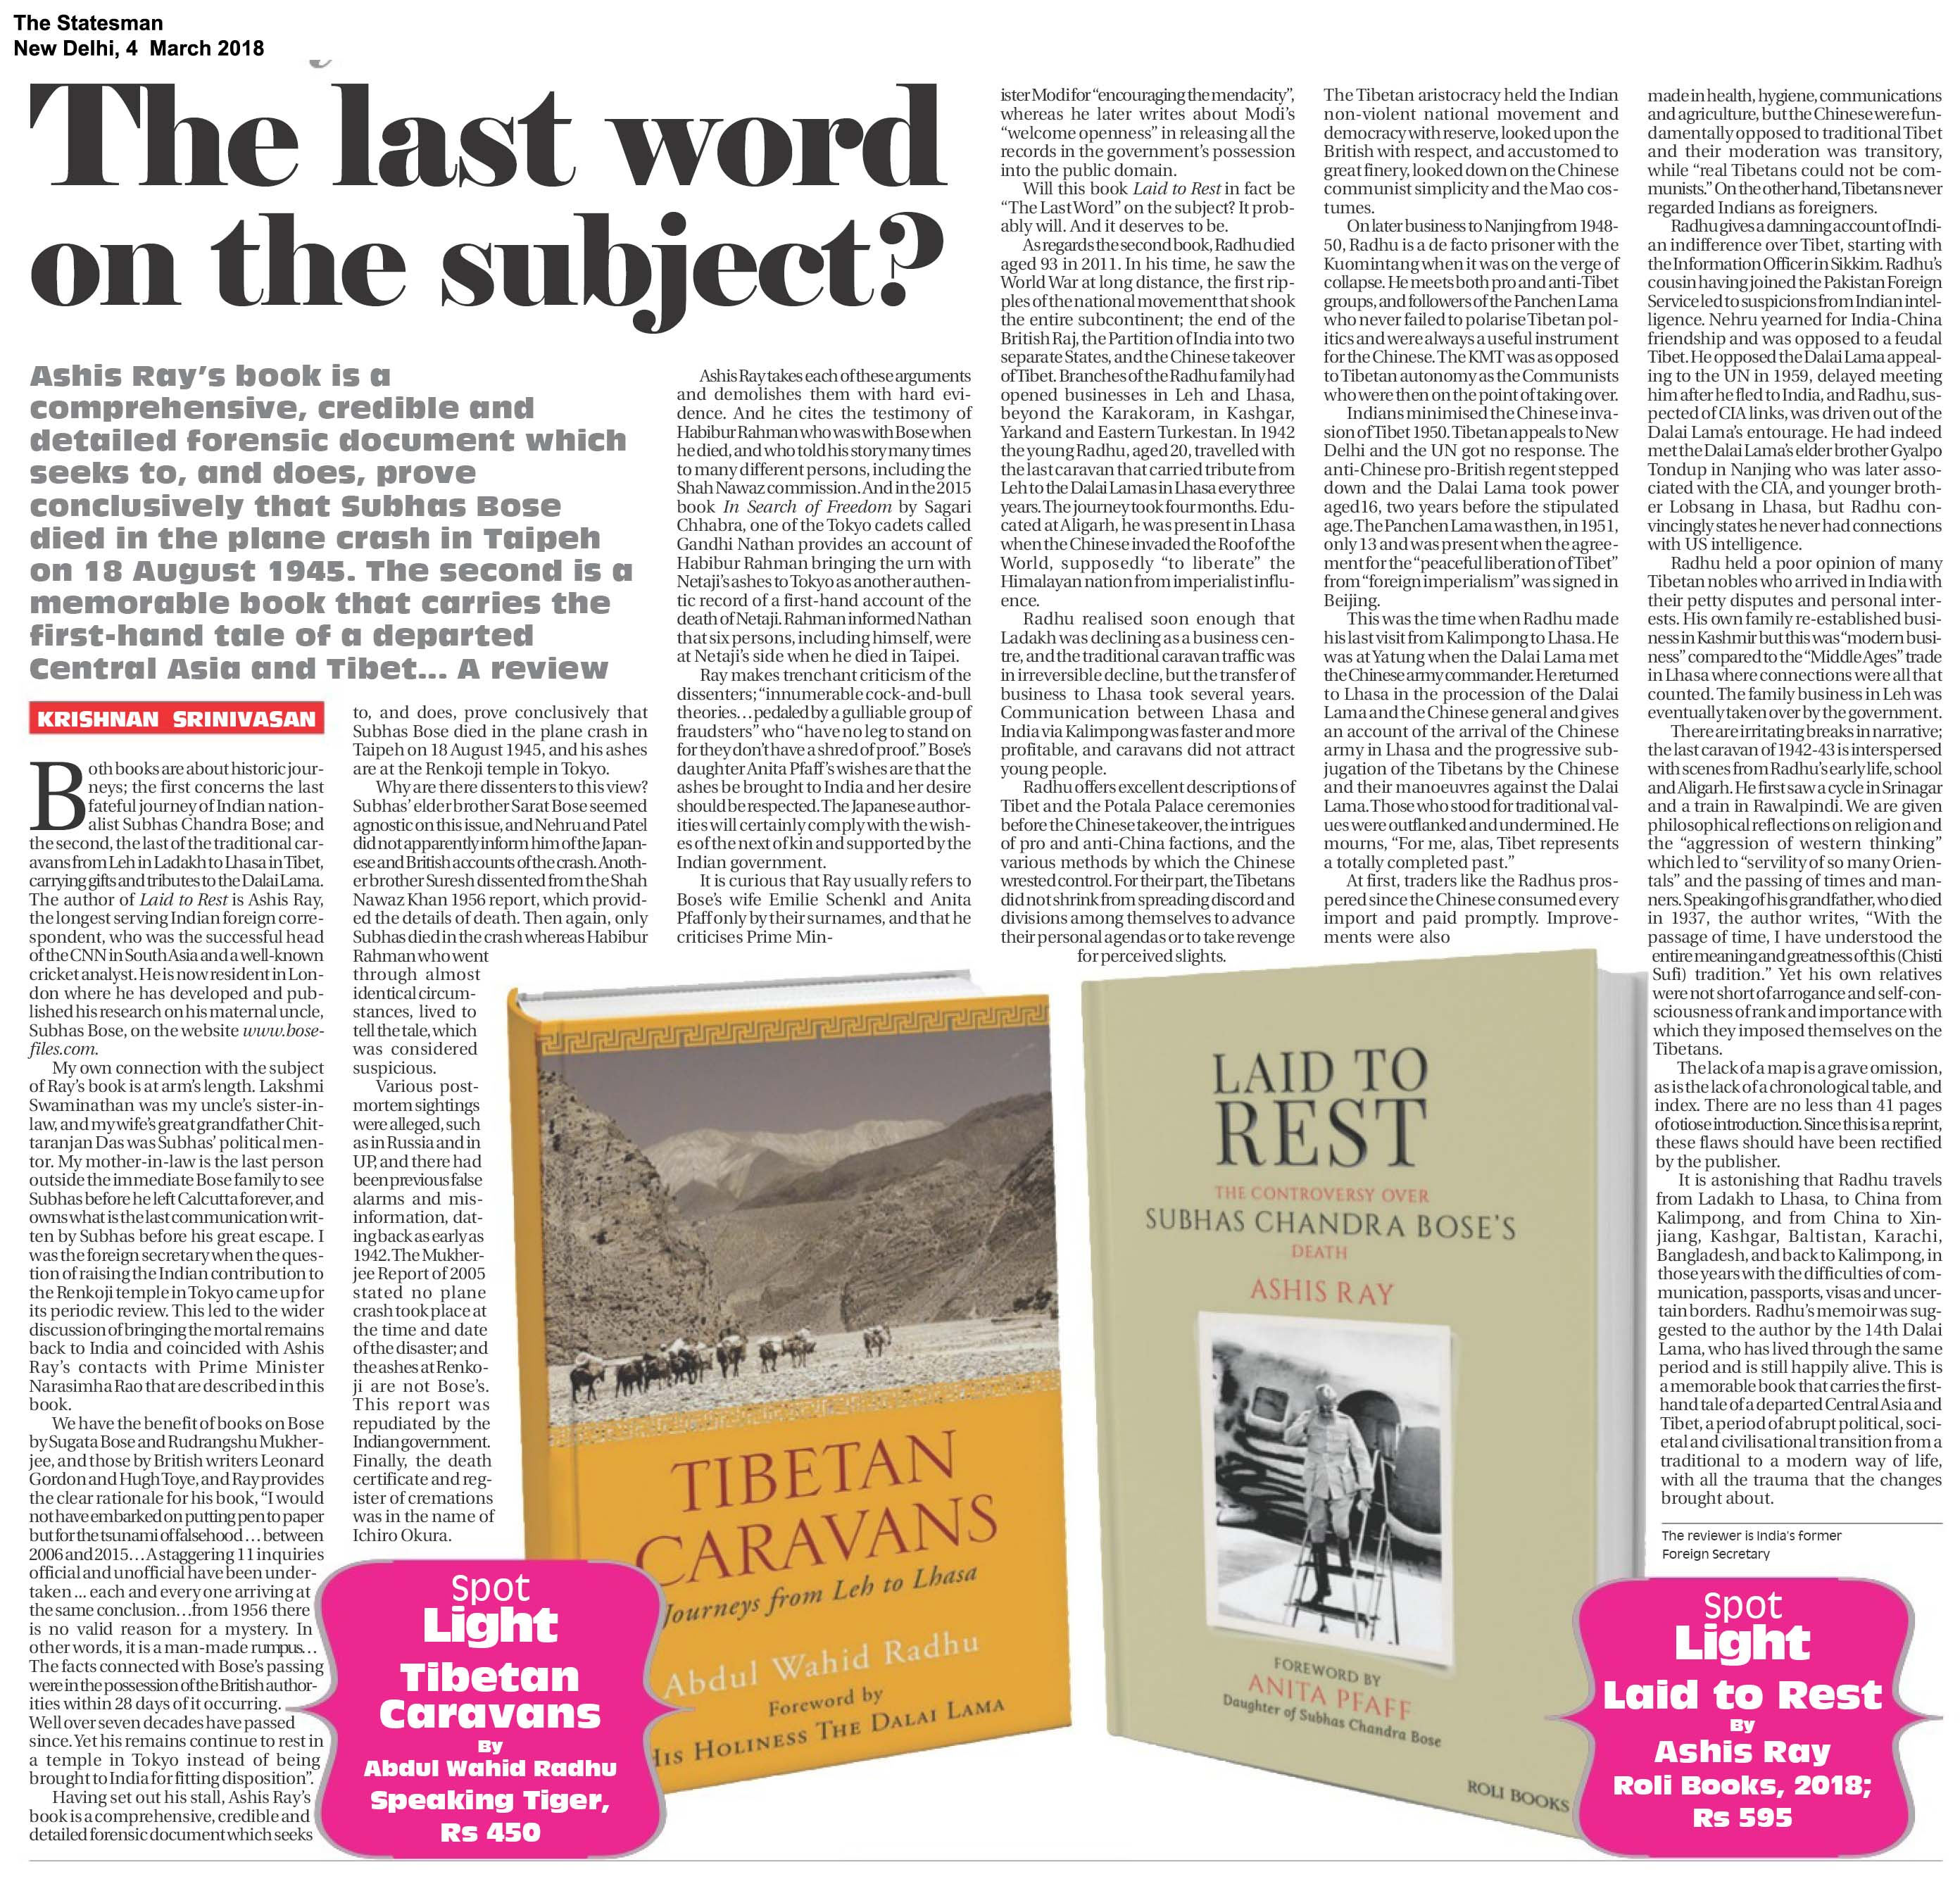 Laid To Rest <br><span>The Statesman, New Delhi</span>